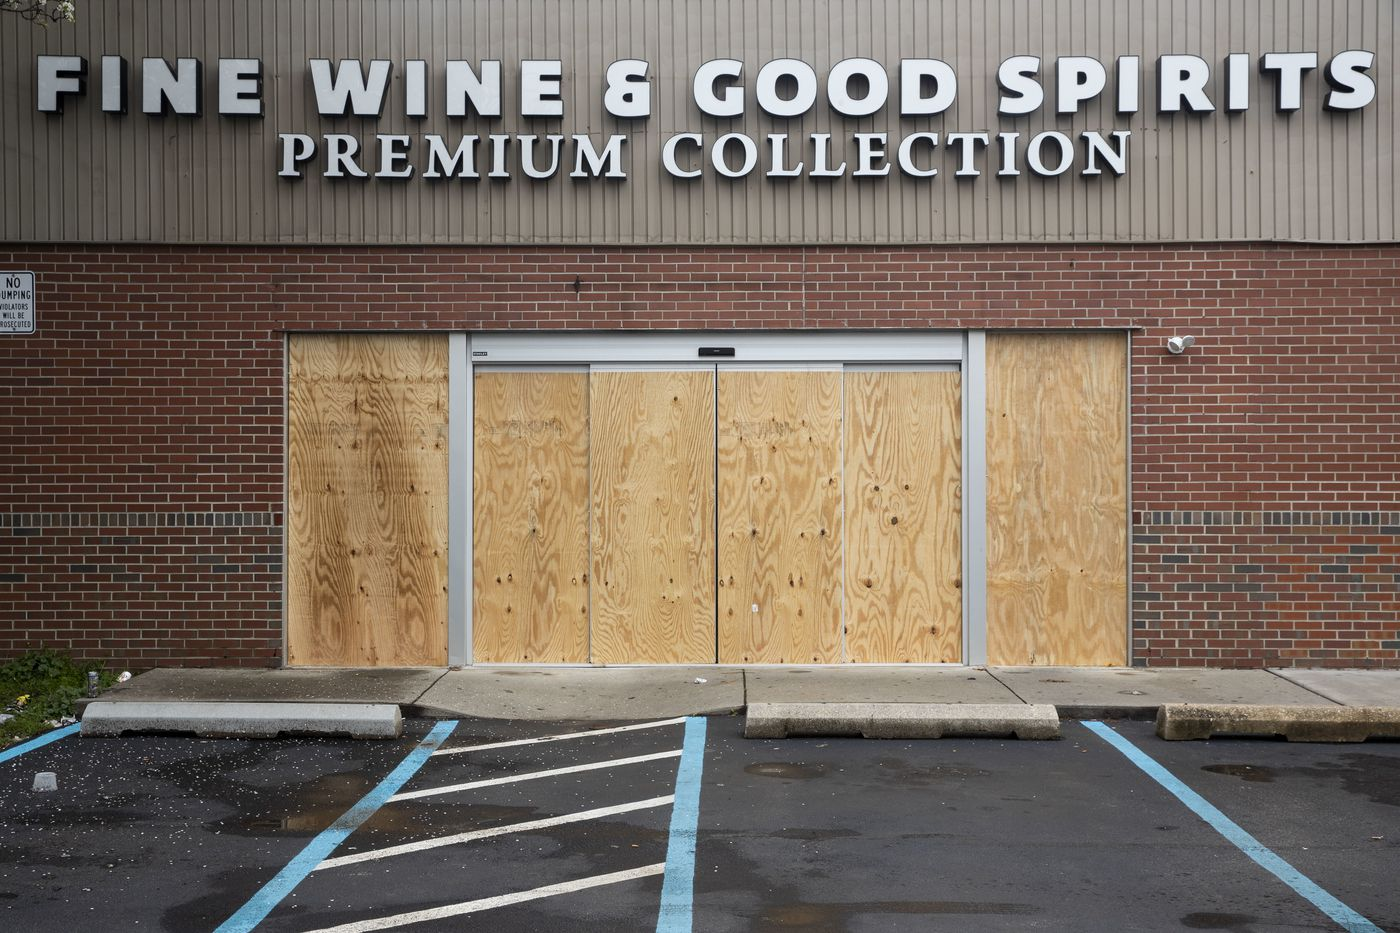 The Fine Wine and Good Spirits Premium Collection at South 11th Street and Wharton Street is boarded up in Philadelphia, Pa. on Thursday, March 19, 2020. Gov. Tom Wolf ordered the closing of all Fine Wine & Good Spirits stores and service centers in Pennsylvania to slow the spread of the coronavirus, effective Tuesday, March 17. The state said it would evaluate the closings at the end of the month.